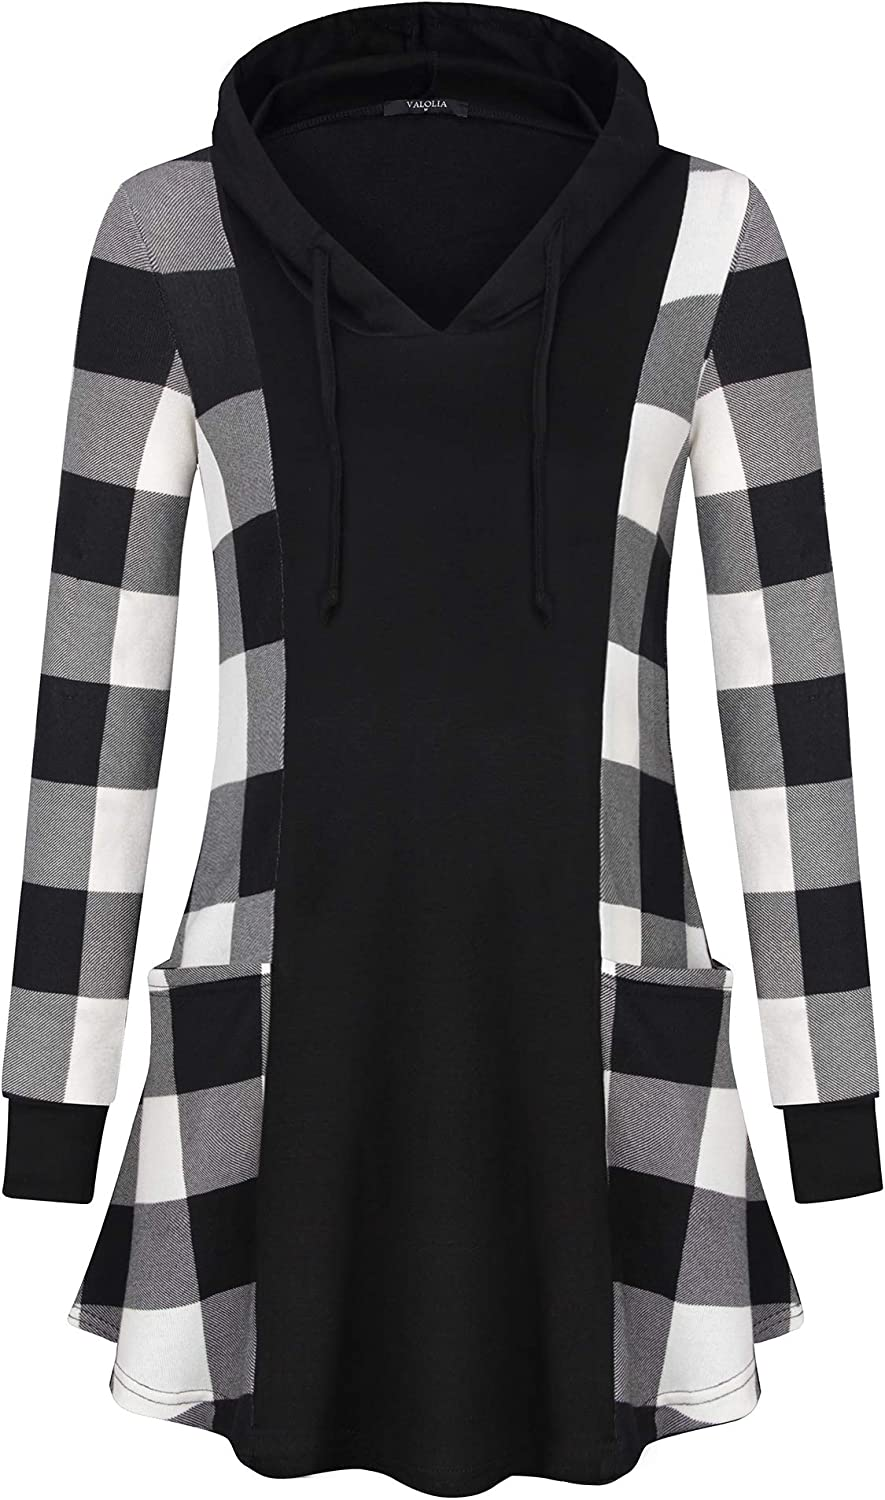 VALOLIA Women's Super Special SALE held Color Block Lightweight Max 57% OFF Spring Sp Plaid Pullover